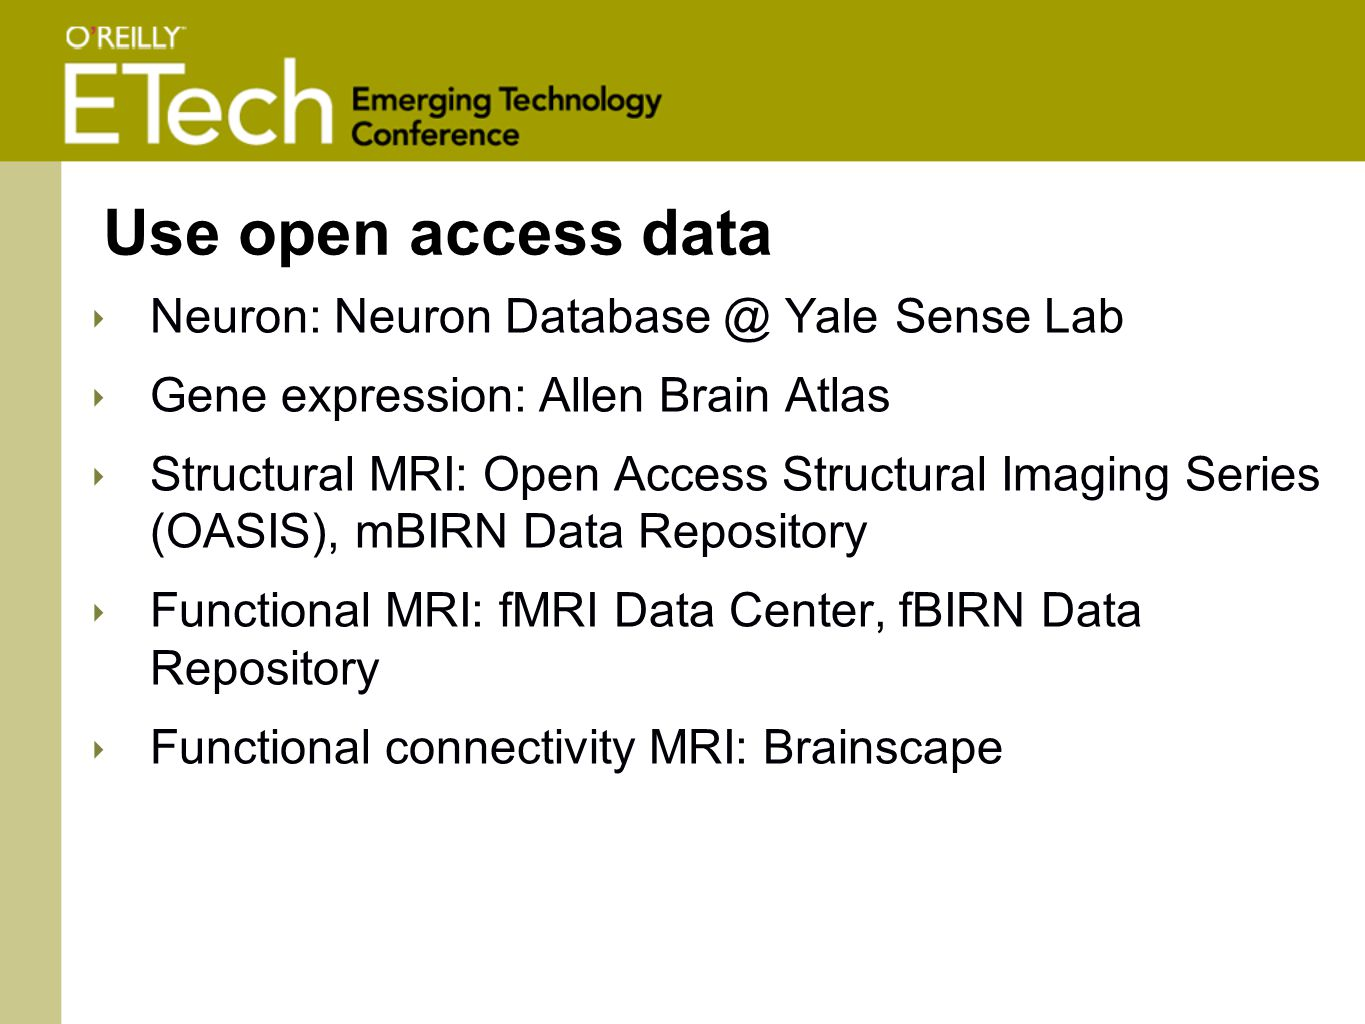 Use open access data ‣ Neuron: Neuron Database @ Yale Sense Lab ‣ Gene expression: Allen Brain Atlas ‣ Structural MRI: Open Access Structural Imaging Series (OASIS), mBIRN Data Repository ‣ Functional MRI: fMRI Data Center, fBIRN Data Repository ‣ Functional connectivity MRI: Brainscape